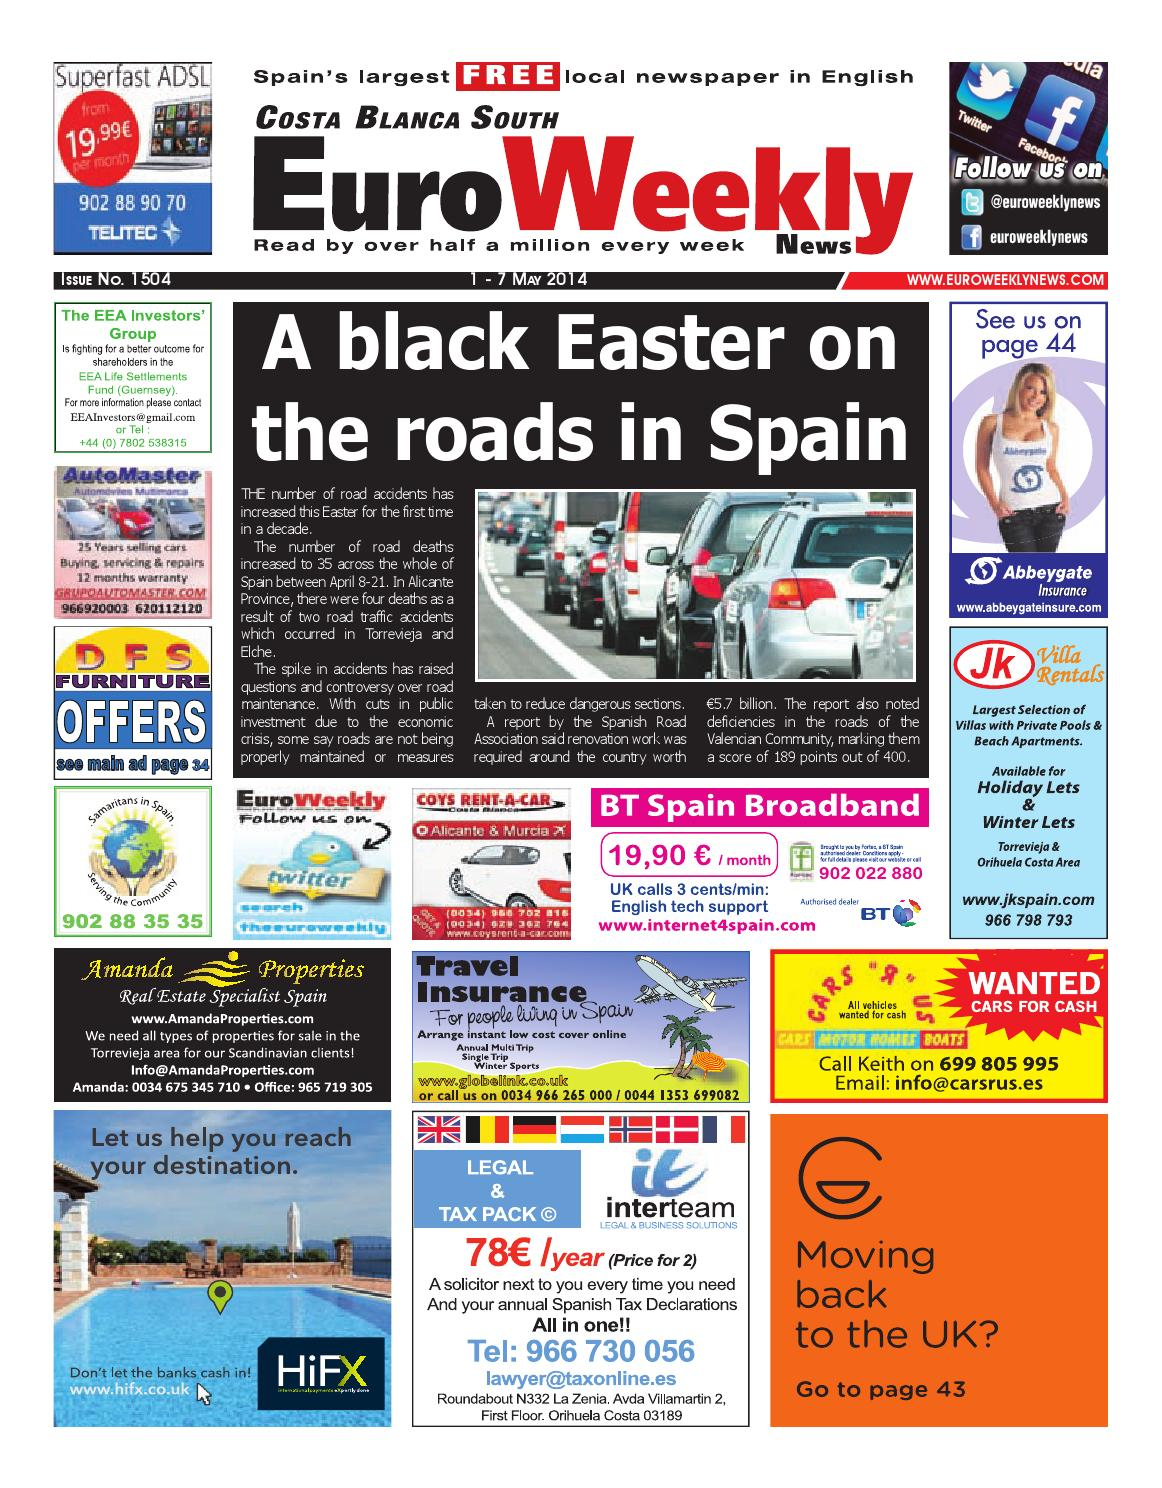 fa199e3d525 Euro Weekly News - Costa Blanca South 1 - 7 May 2014 Issue 1504 by Euro  Weekly News Media S.A. - issuu